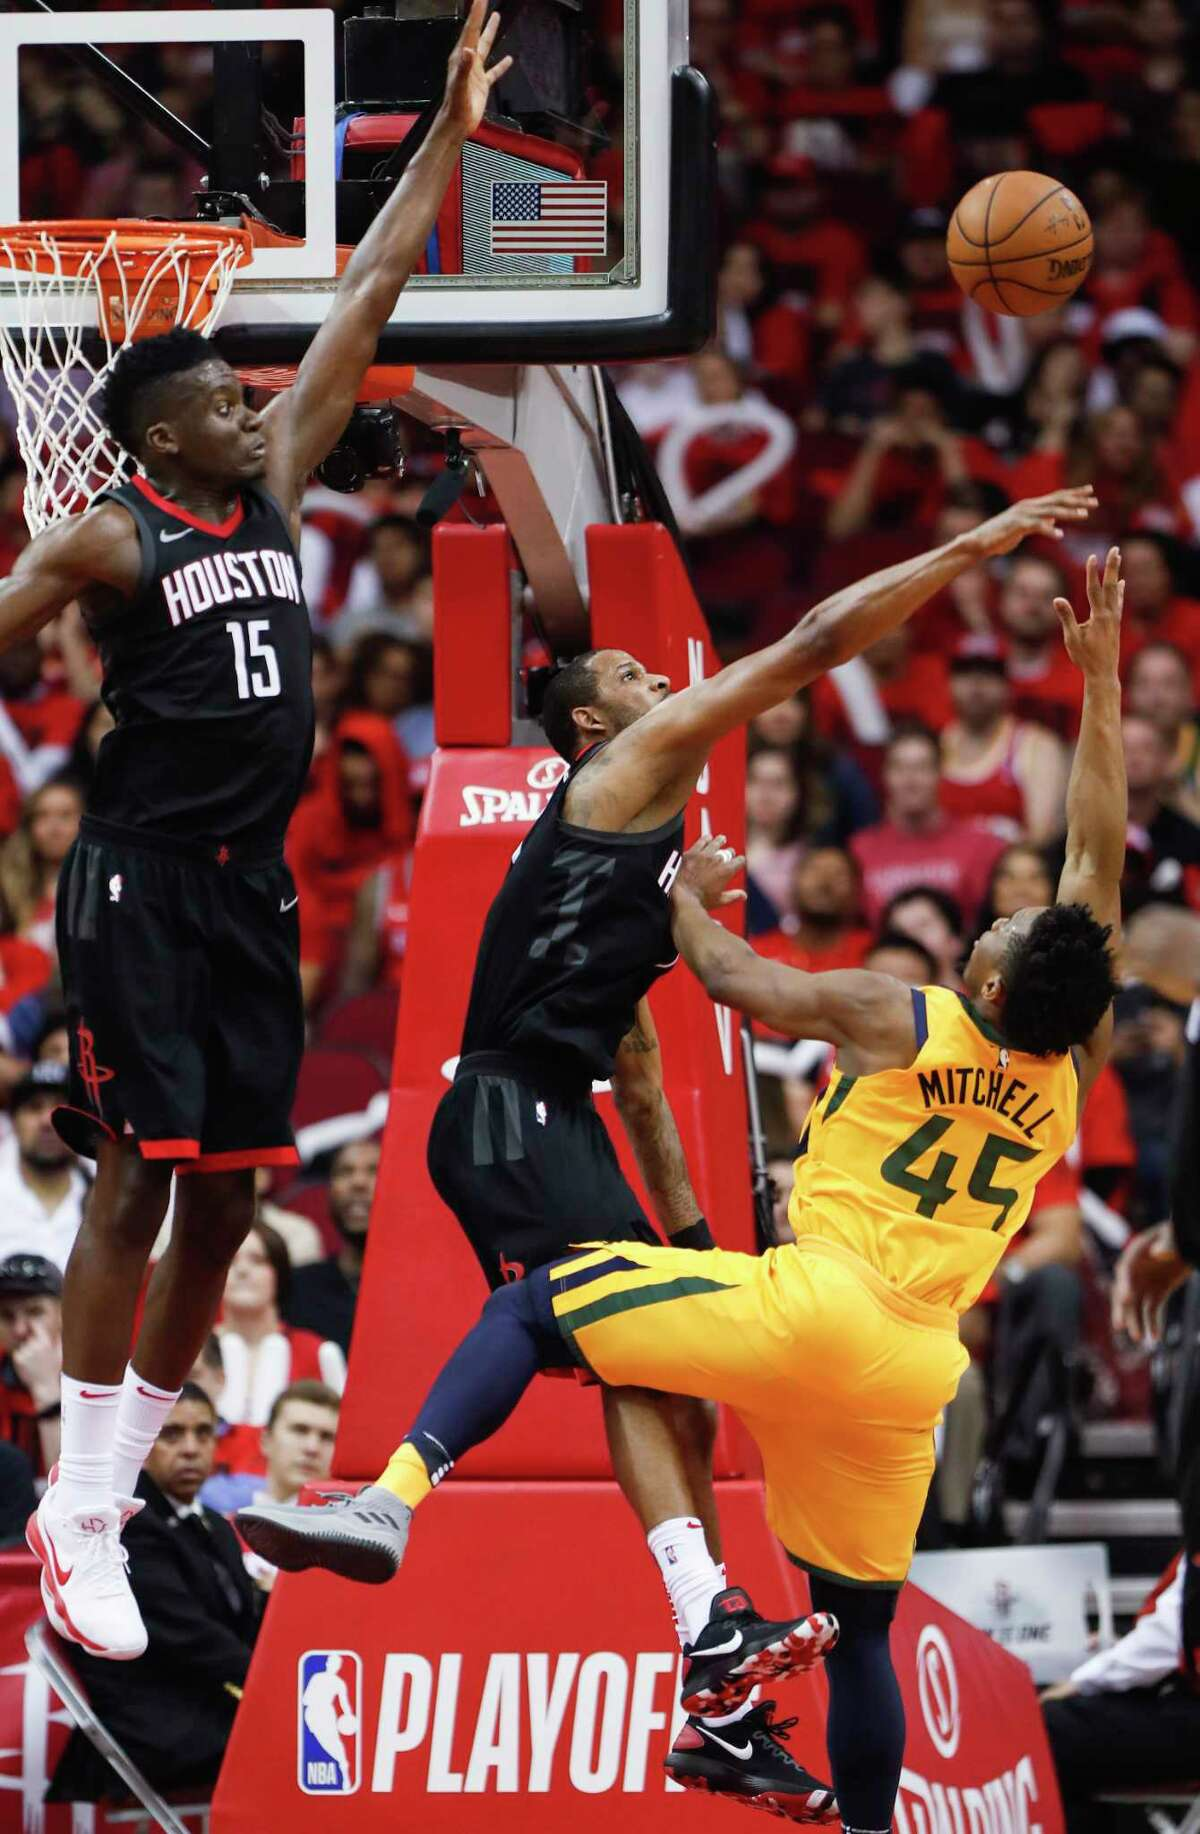 Houston Rockets center Clint Capela (15) and forward Trevor Ariza (1) defend a shot by Utah Jazz guard Donovan Mitchell (45) during the second half in Game 1 of an NBA basketball second-round playoff series at Toyota Center on Sunday, April 29, 2018, in Houston.